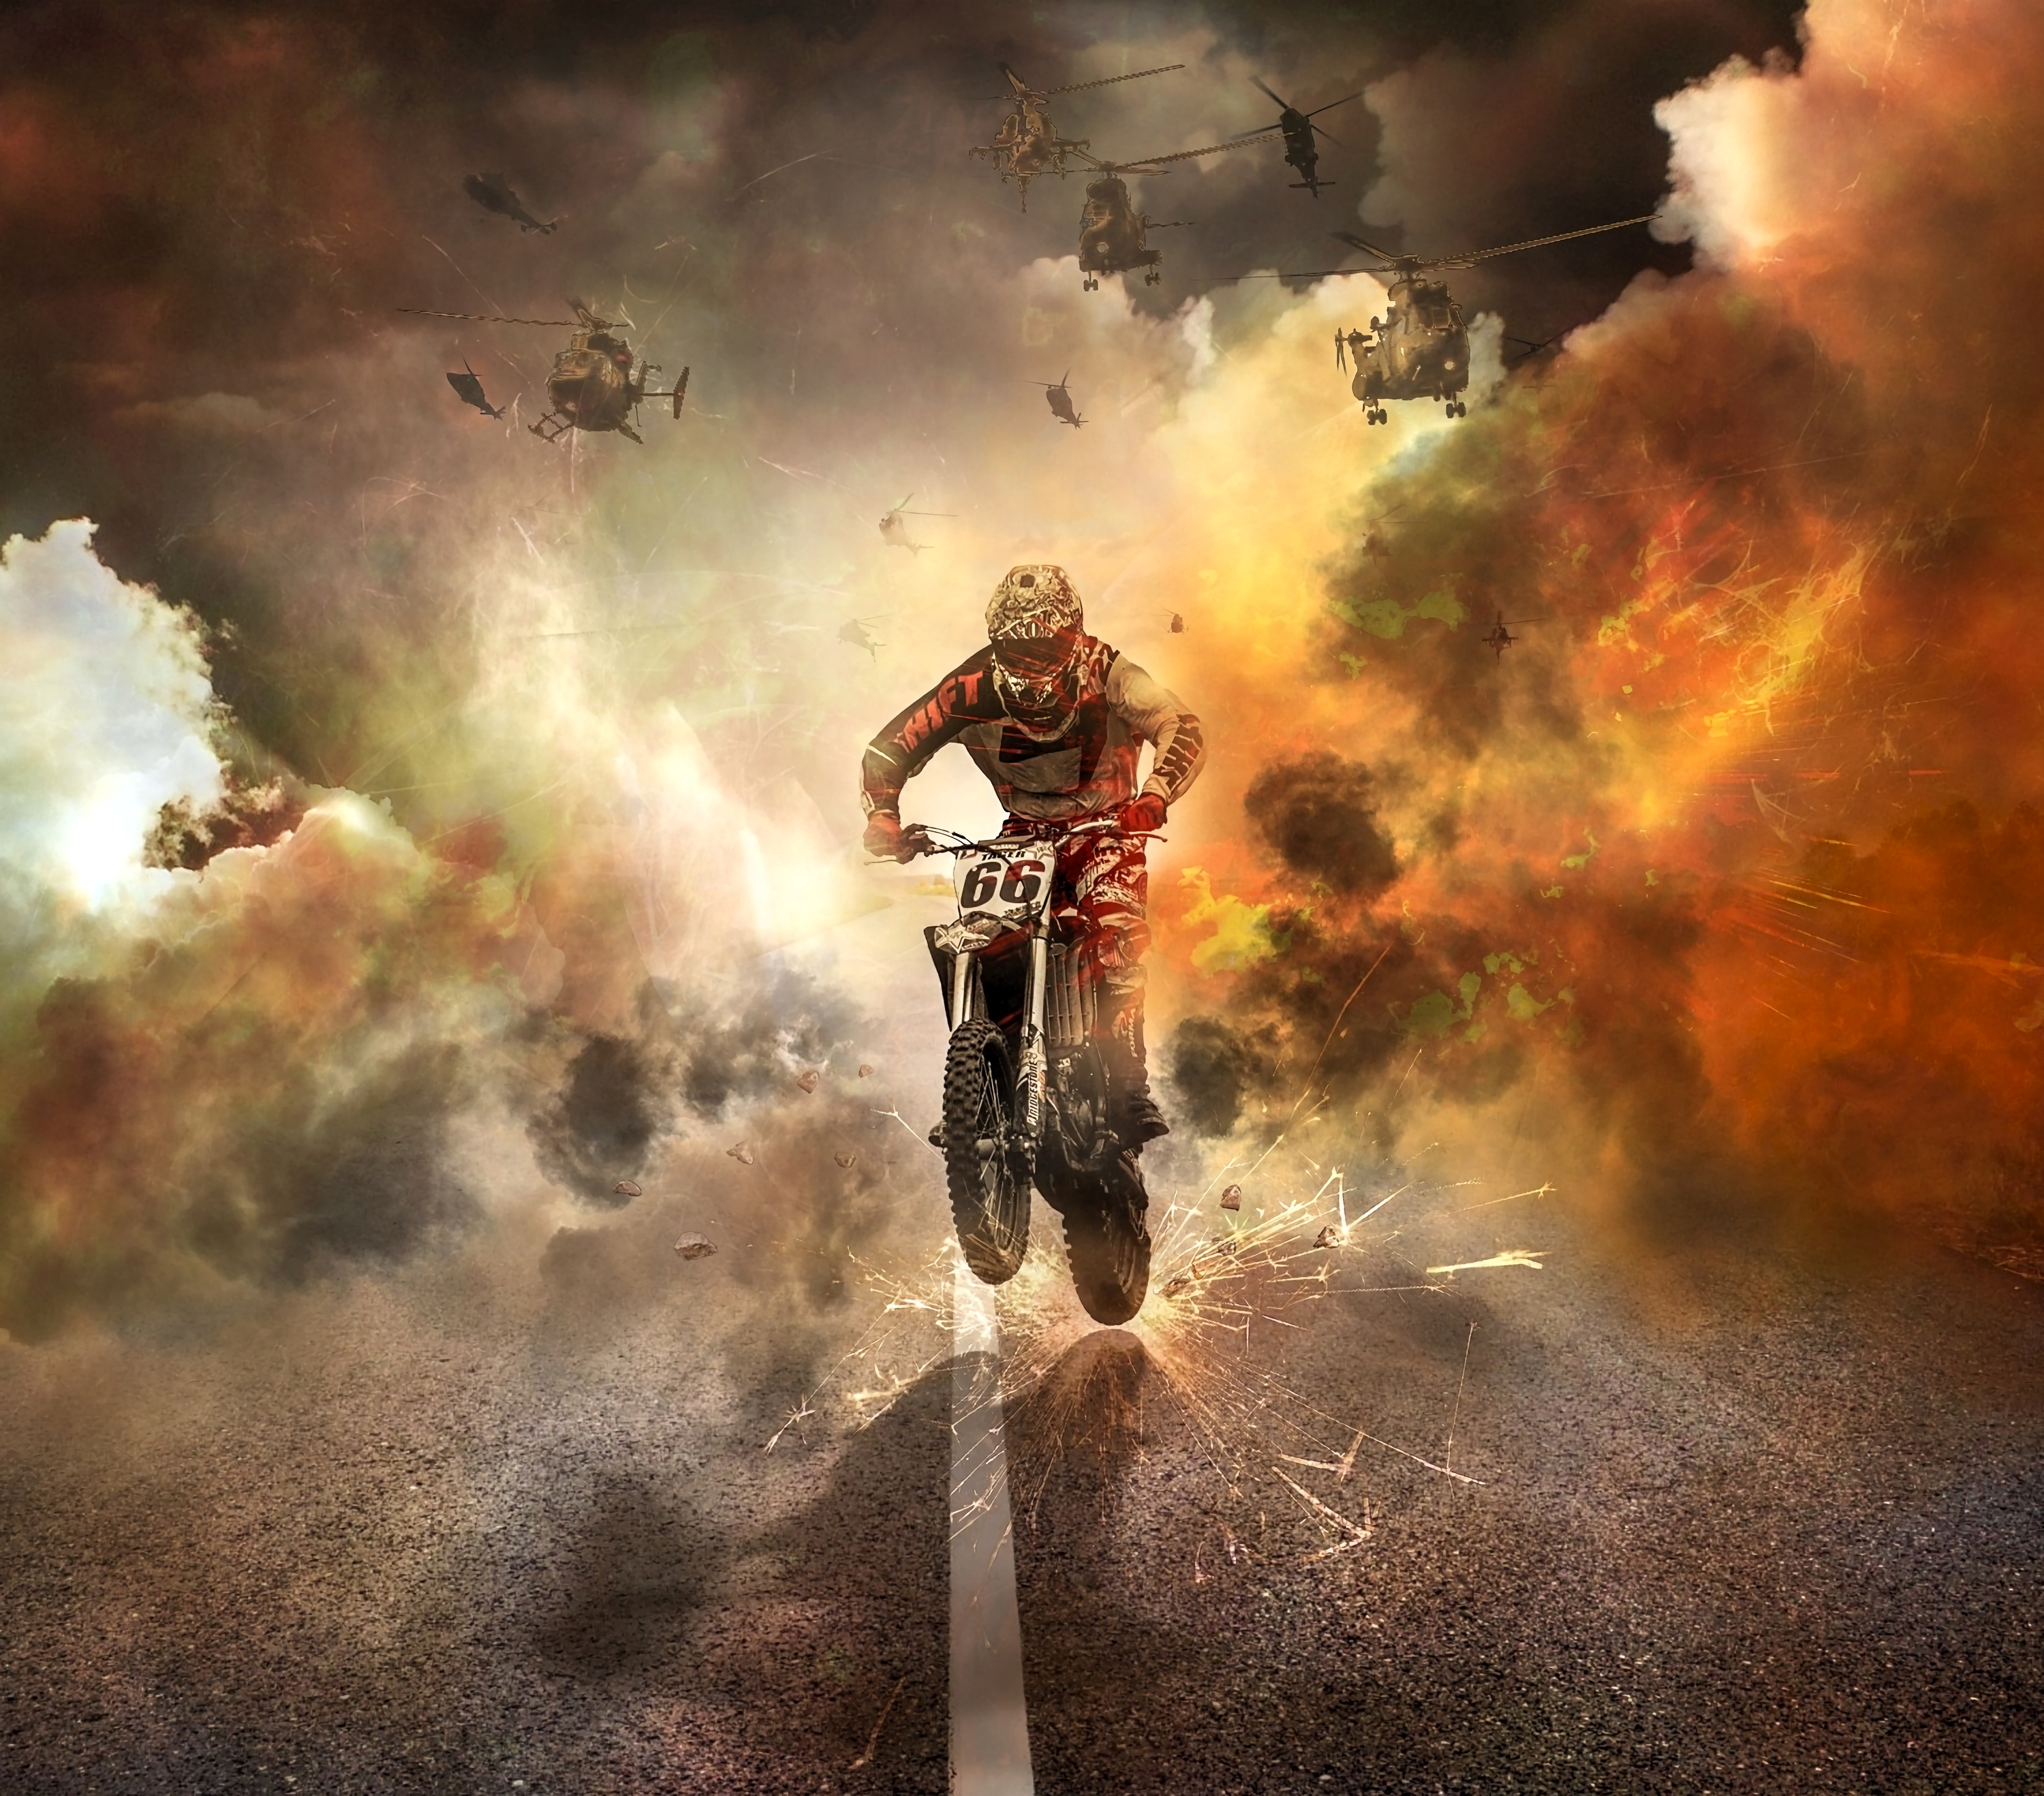 146798 Screensavers and Wallpapers Road for phone. Download Fire, Helicopters, Motorcycles, Sparks, Road, Motorcyclist, Motorcycle pictures for free